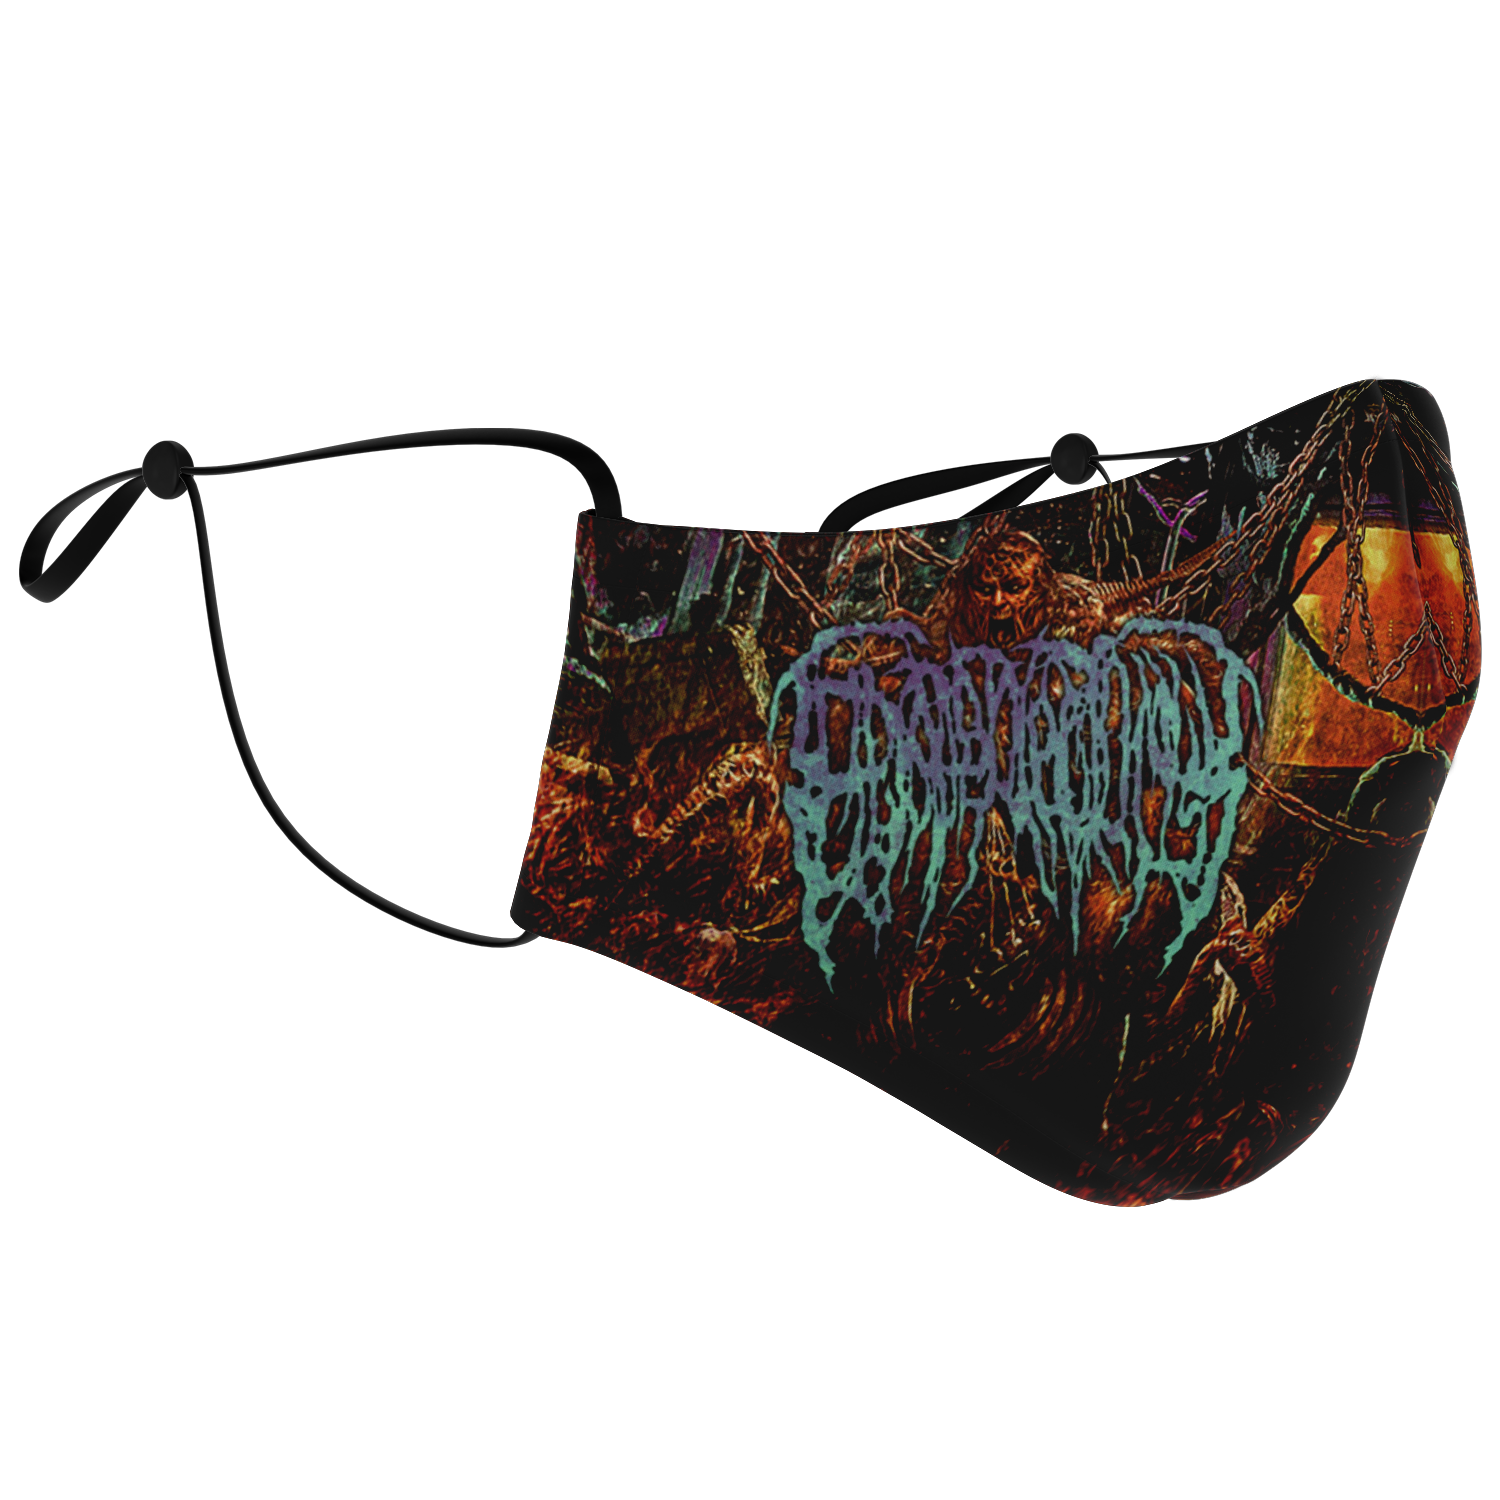 Officially Licensed Epicardiectomy - Abhorrent Stench of Posthumous Gastrorectal Desecration Mask